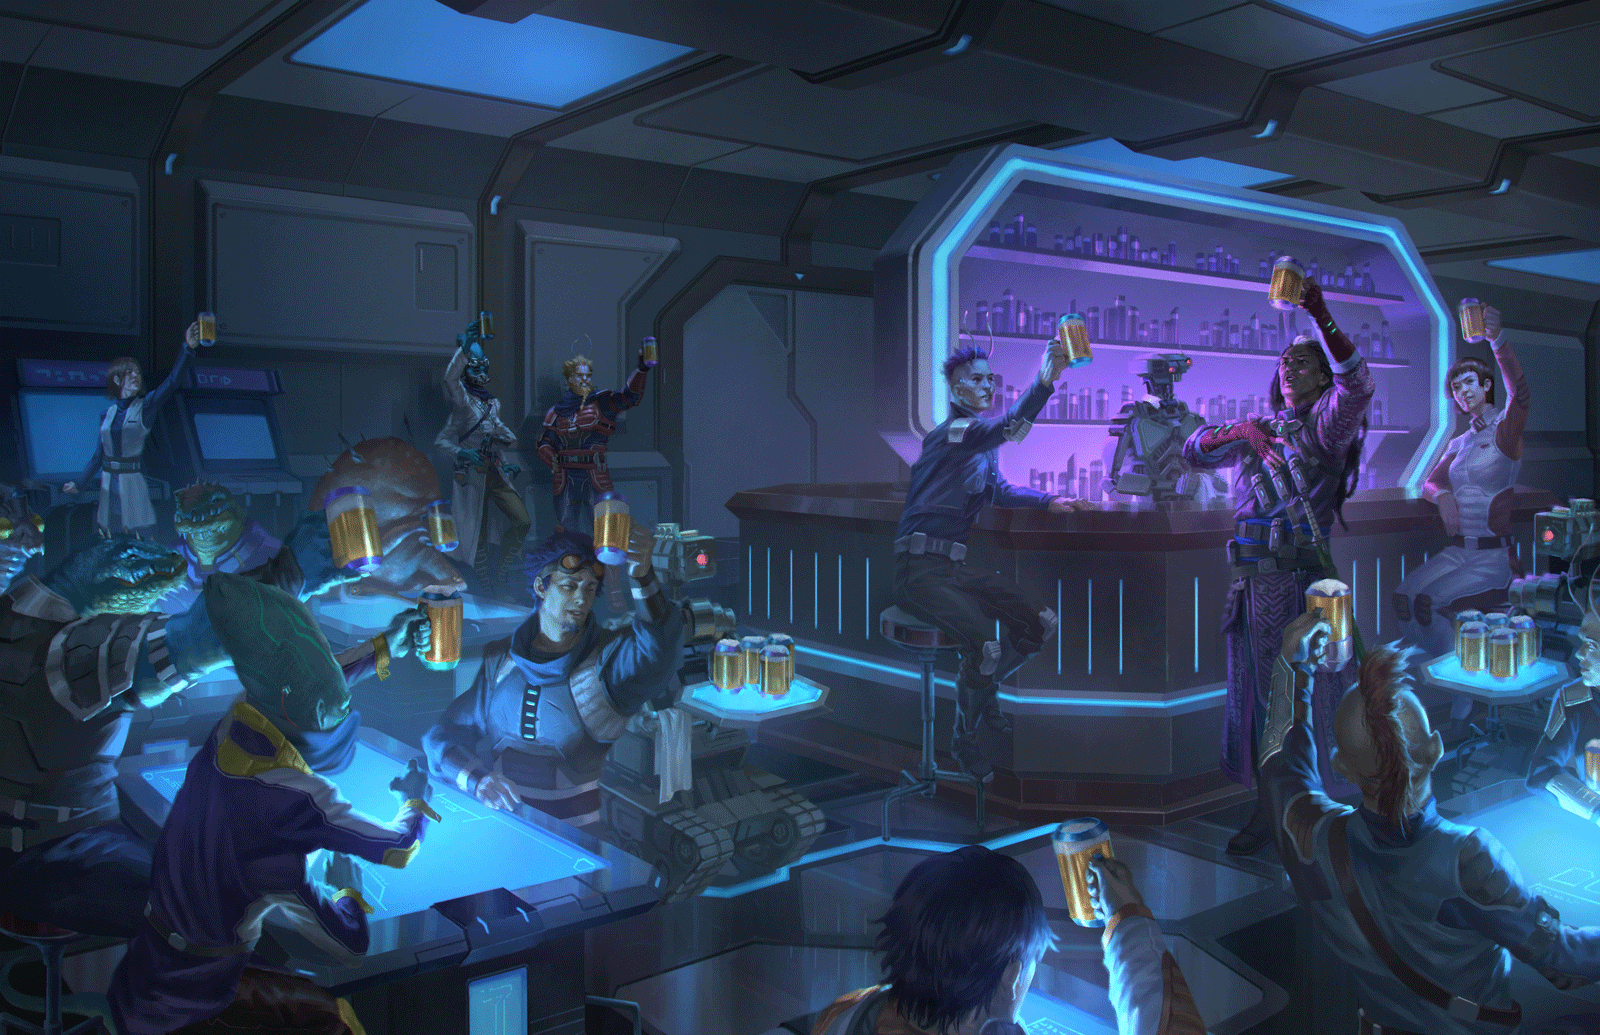 A group of humans and aliens raise their glasses in celebration in a futuristic bar